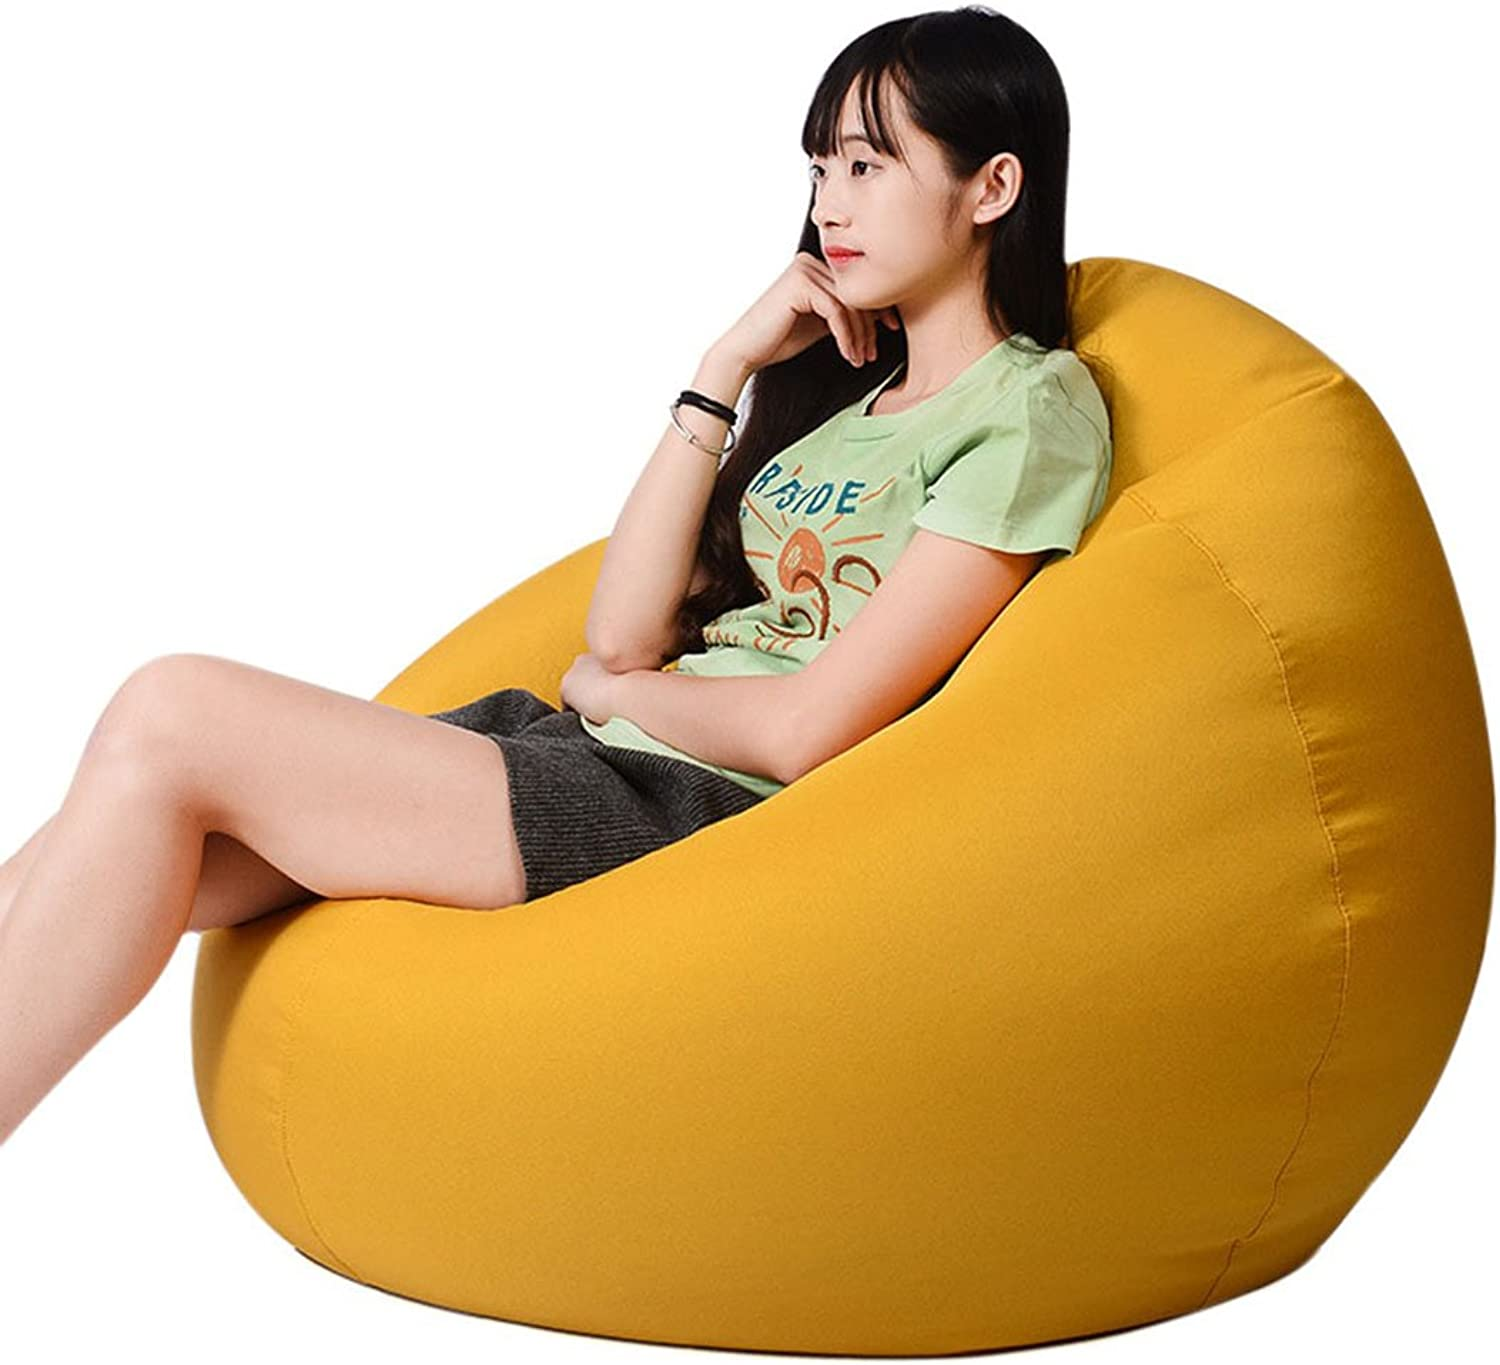 Freahap Huge Bean Bag Chair 35  for Adult Memory Foam Filled Sofa Lounge Couch Removable Cover Yellow